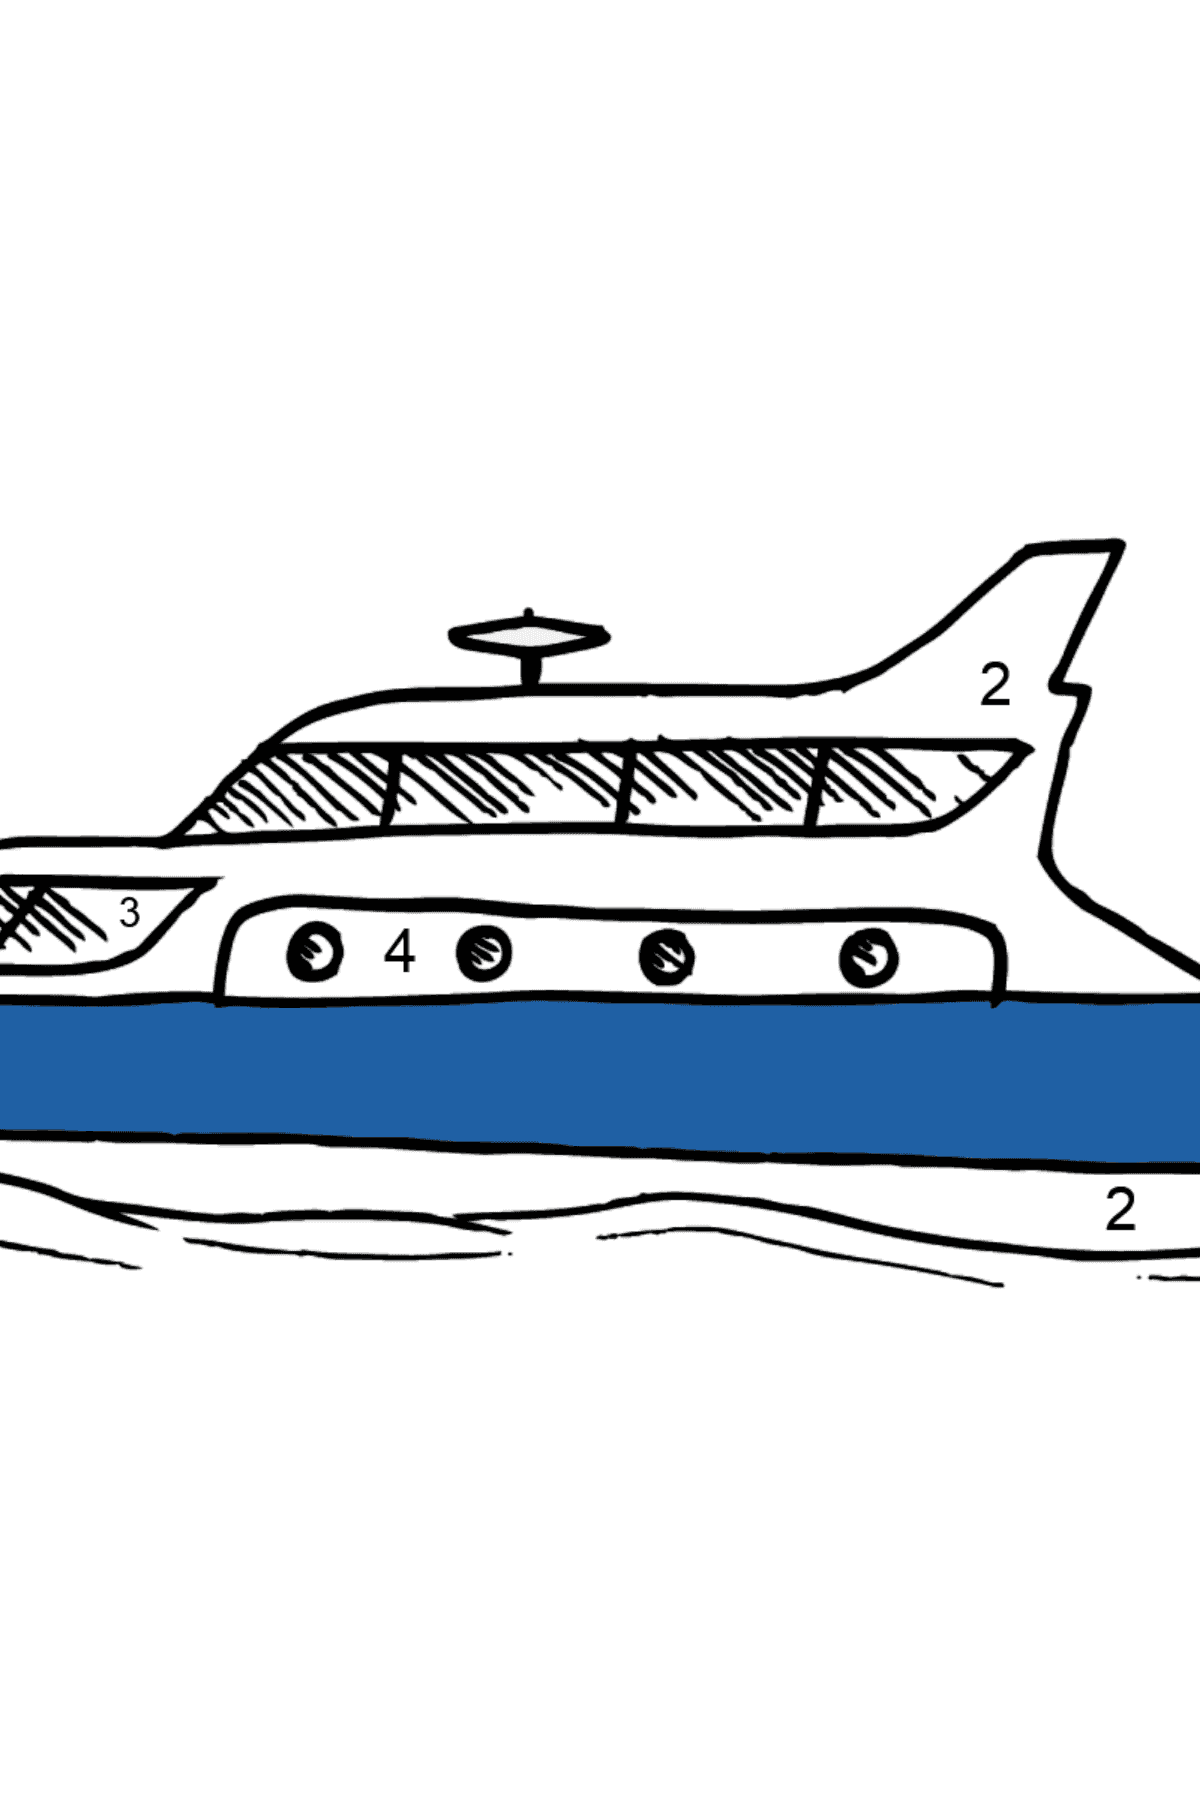 Coloring Page - A Yacht - Coloring by Numbers for Kids